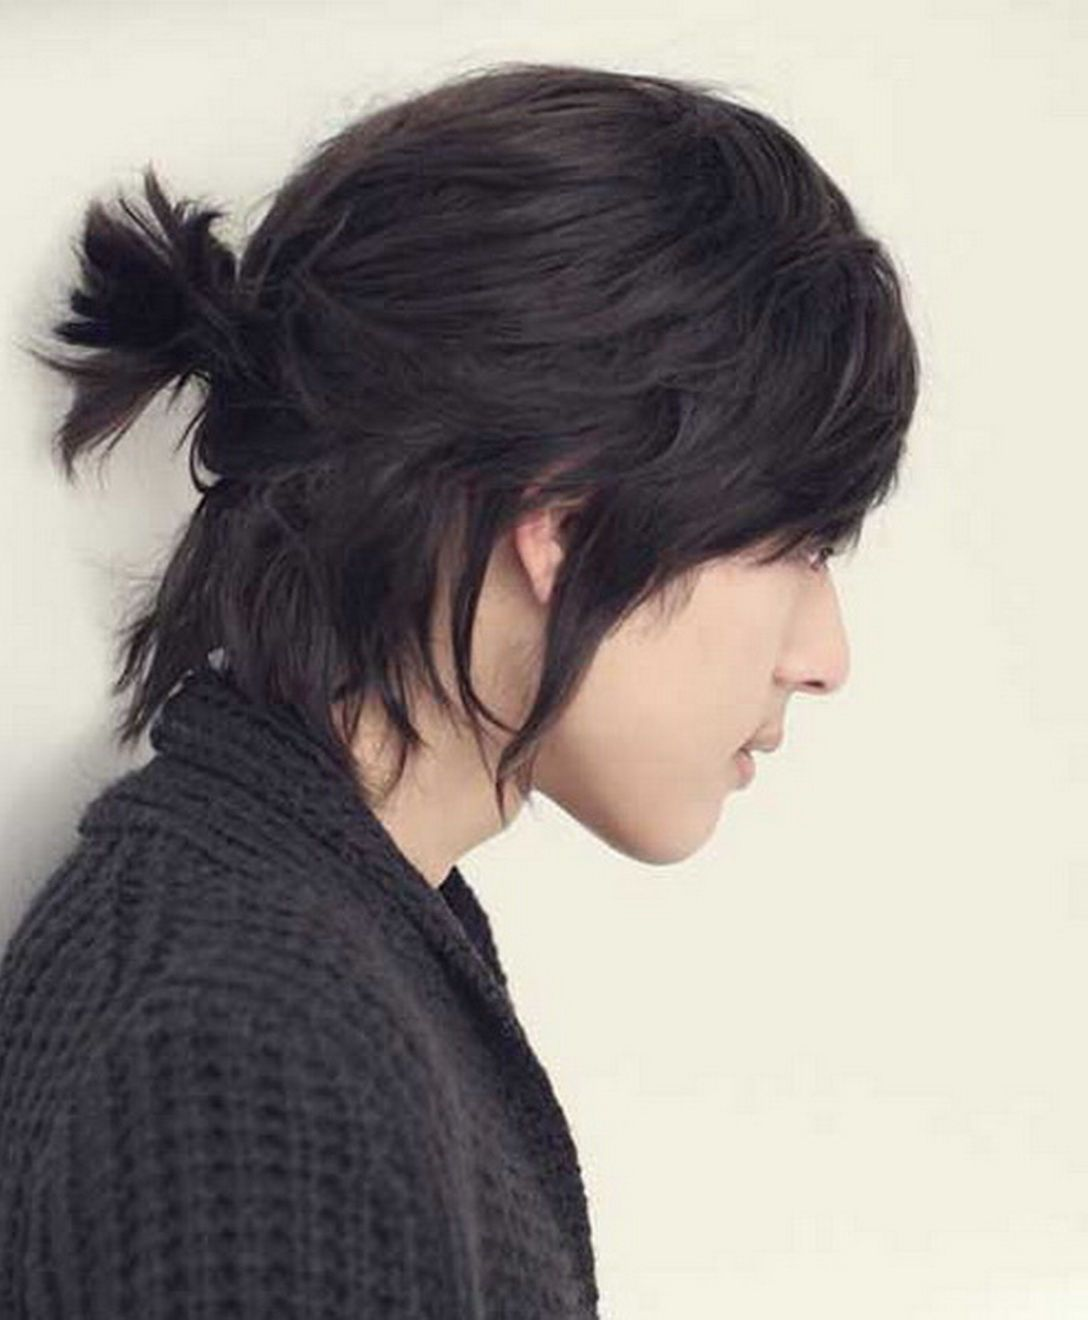 Remarkable Asian Hairstyles Asian Men And Hairstyles On Pinterest Short Hairstyles For Black Women Fulllsitofus